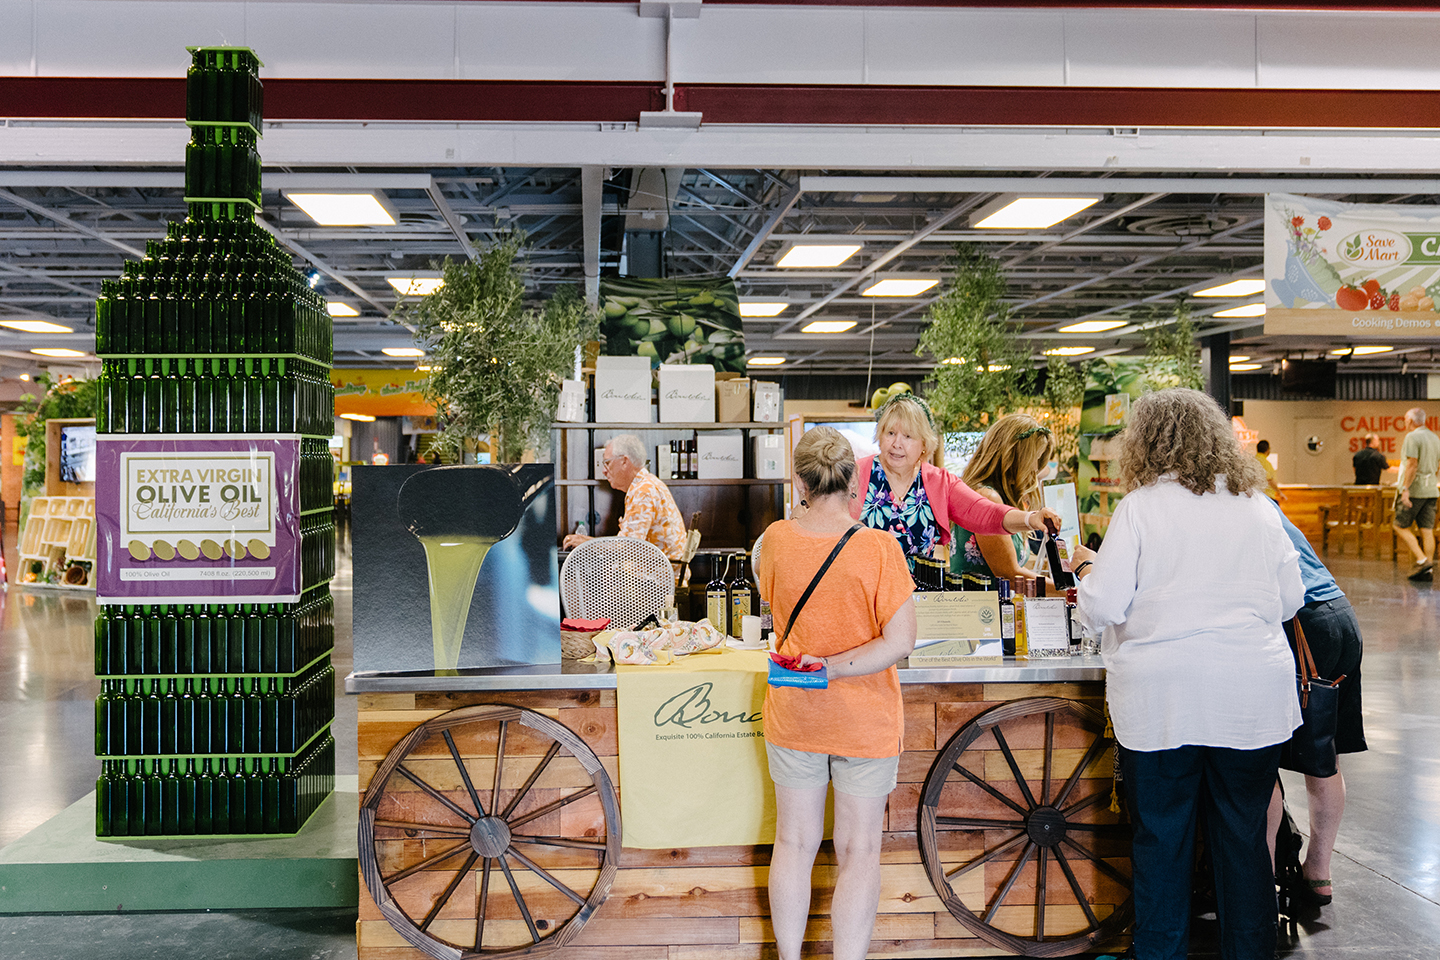 CA Olive Oil Sampling & Sales Booth, Best of Show Winners, Bondolio Olive Oil